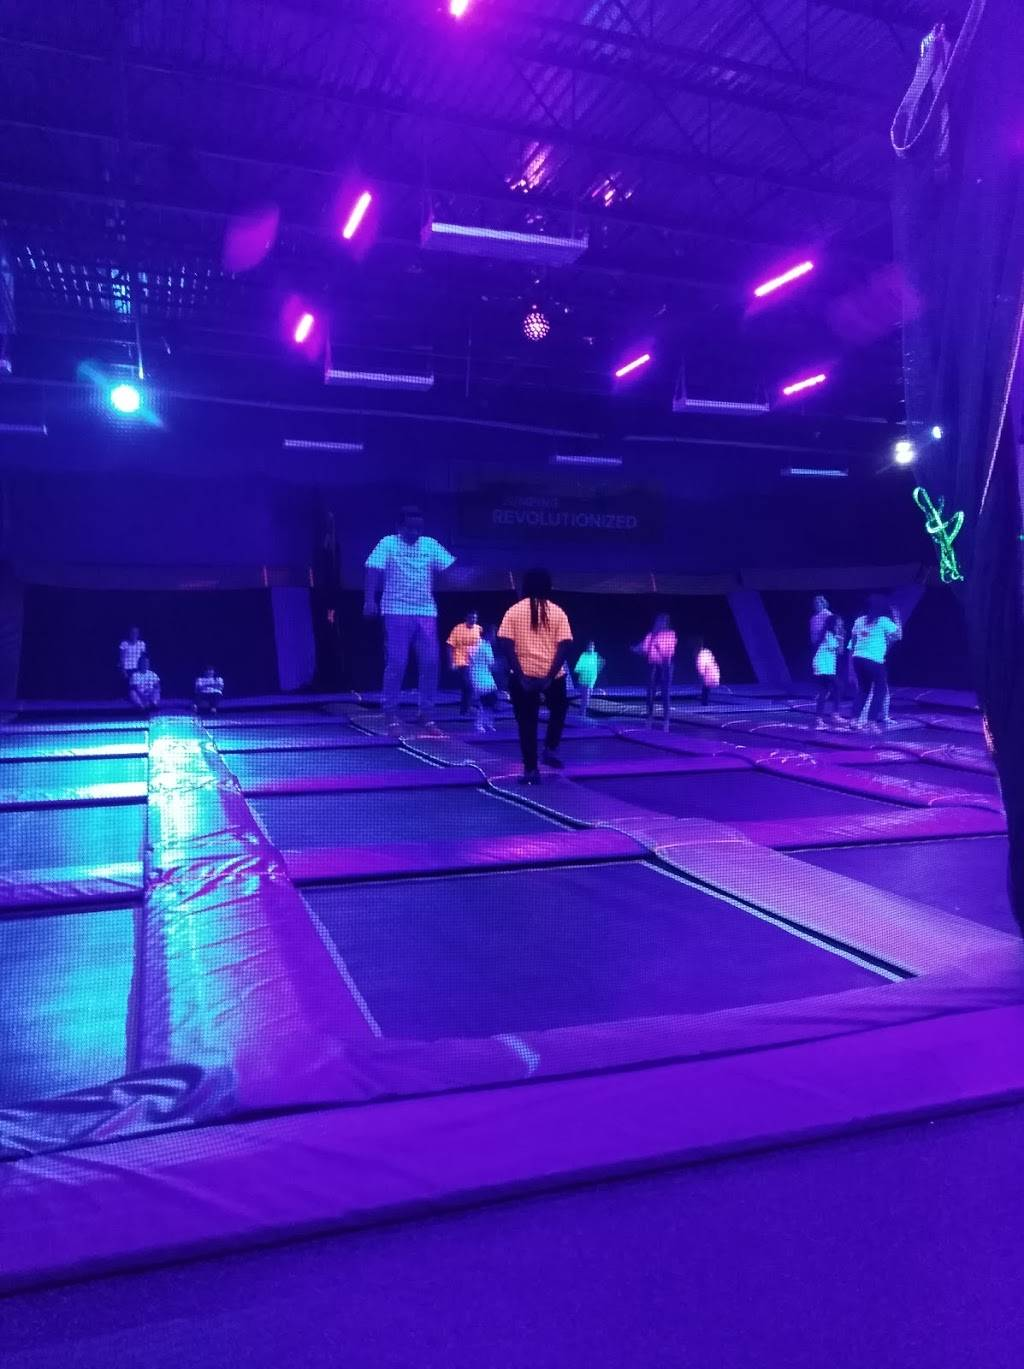 Sky Zone Trampoline Park - amusement park  | Photo 2 of 10 | Address: 1572-A, Highwoods Blvd, Greensboro, NC 27410, USA | Phone: (336) 550-1800